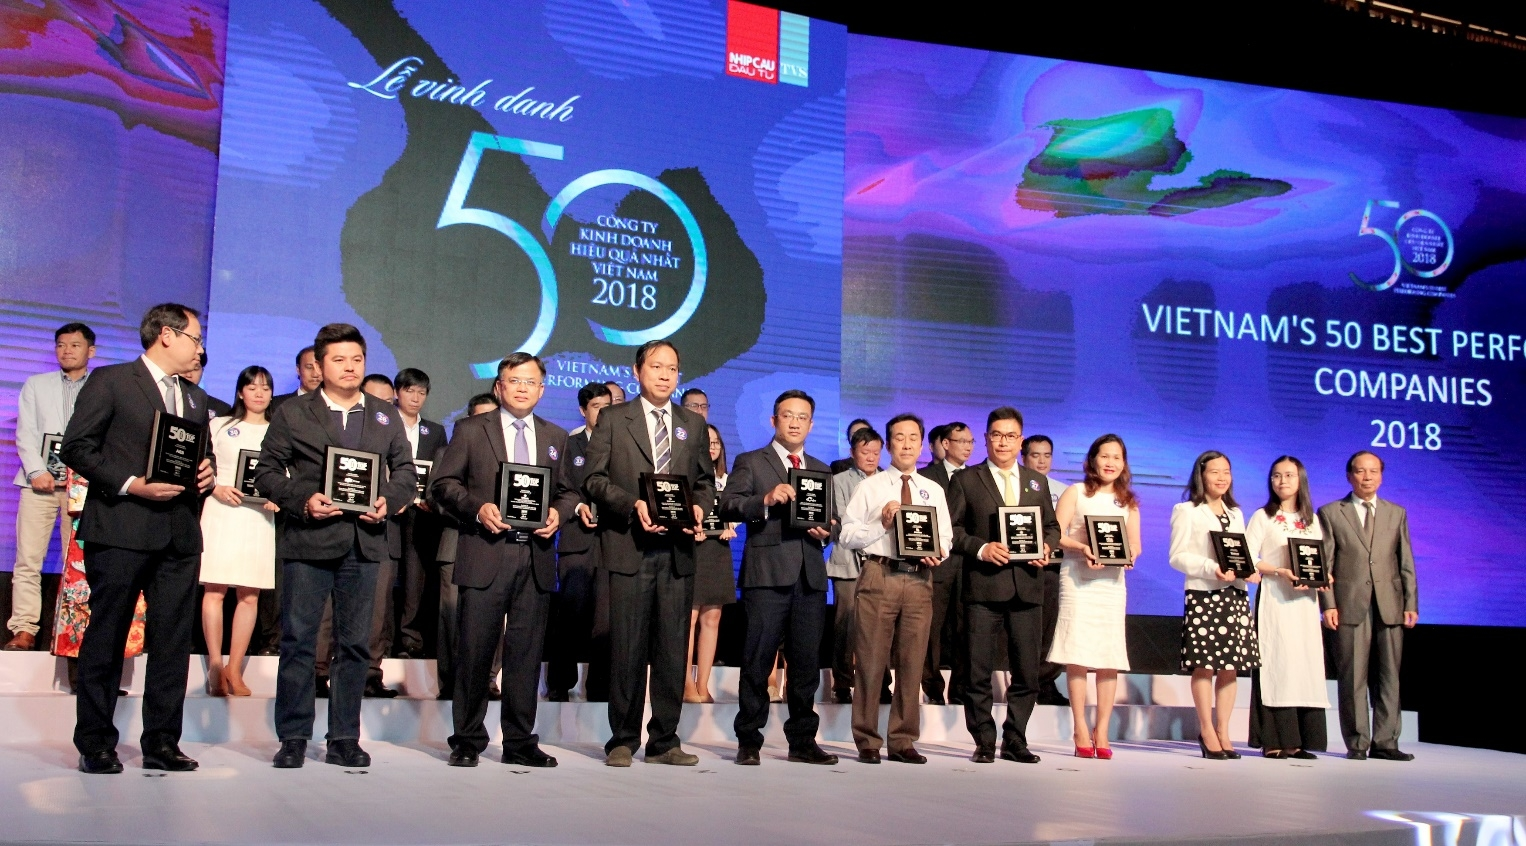 novaland among 50 best performing companies for third consecutive year